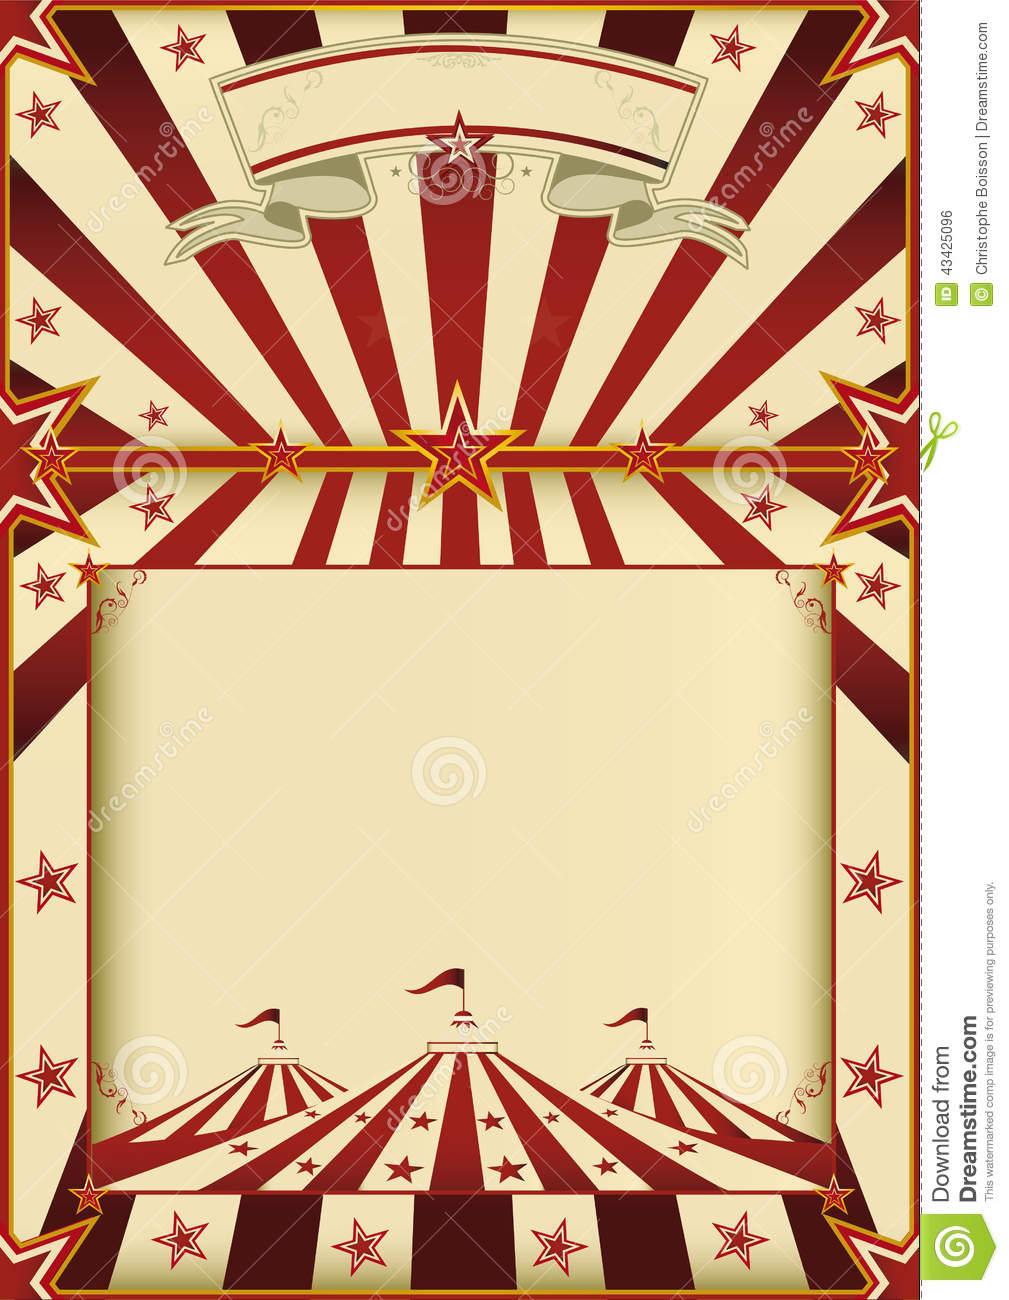 Red And Cream Circus Poster Stock Vector